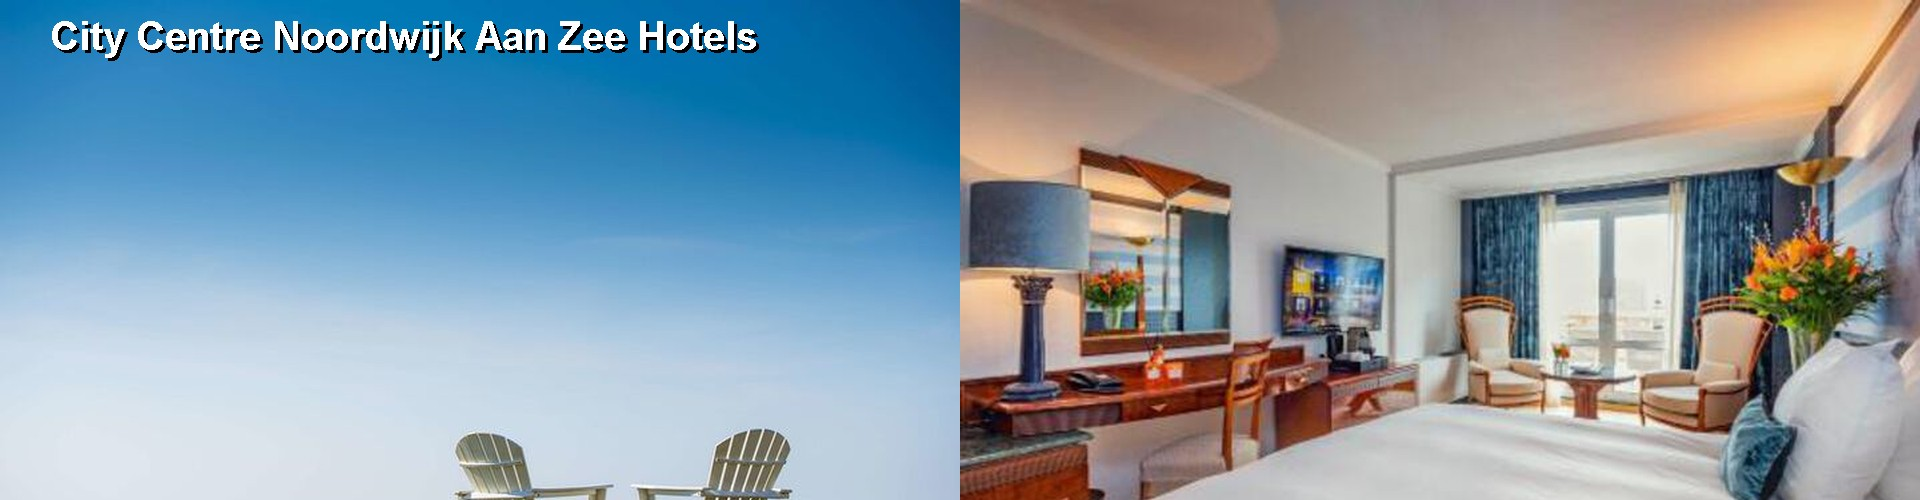 3 Best Hotels near City Centre Noordwijk Aan Zee